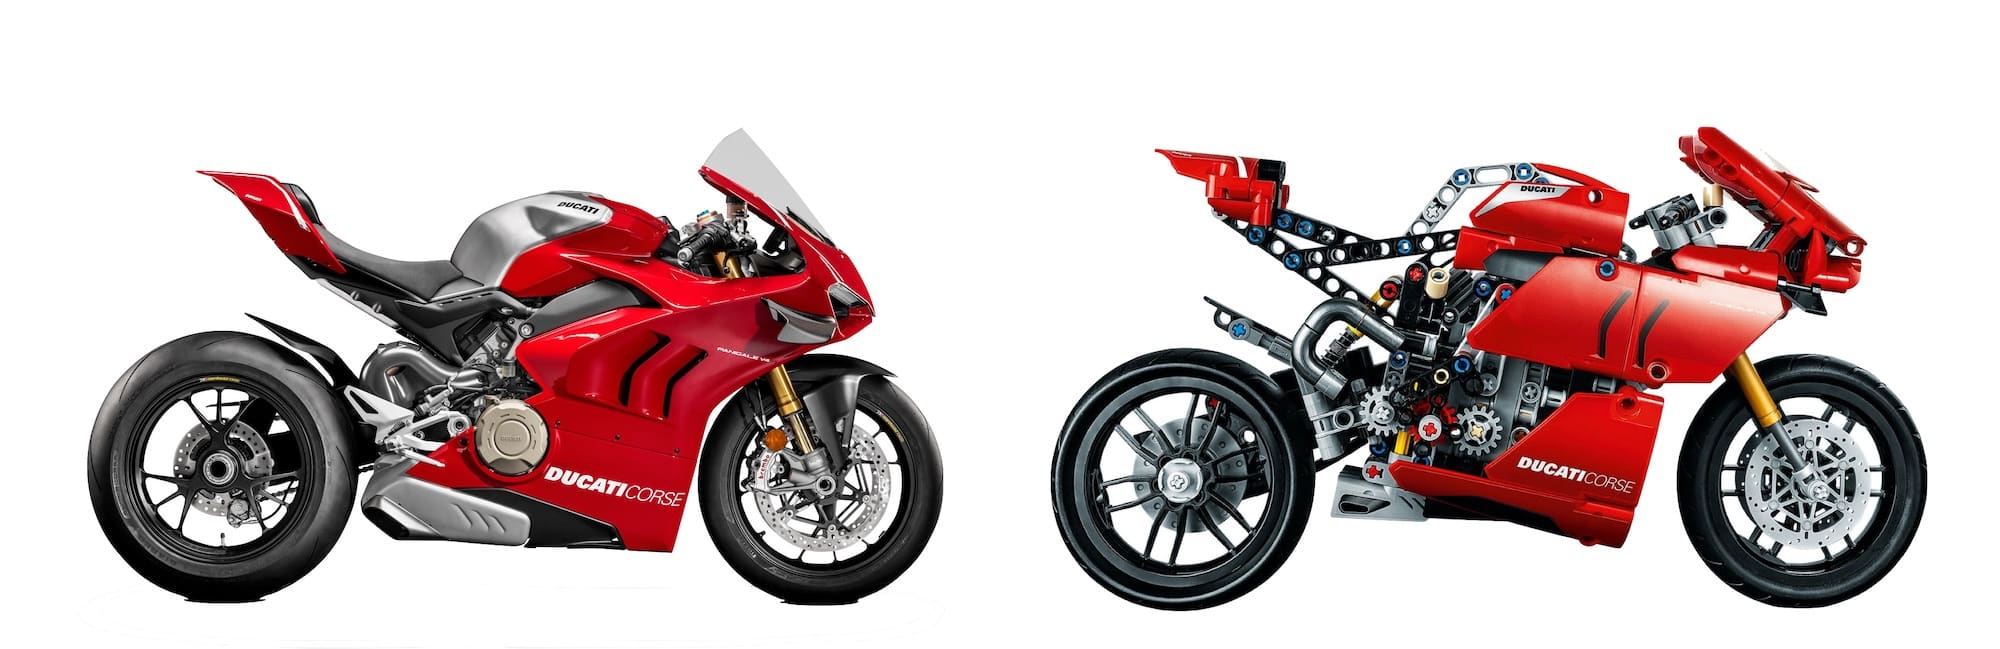 Ducati Panigale V4R and the Lego Ducati Panigale V4R side by side